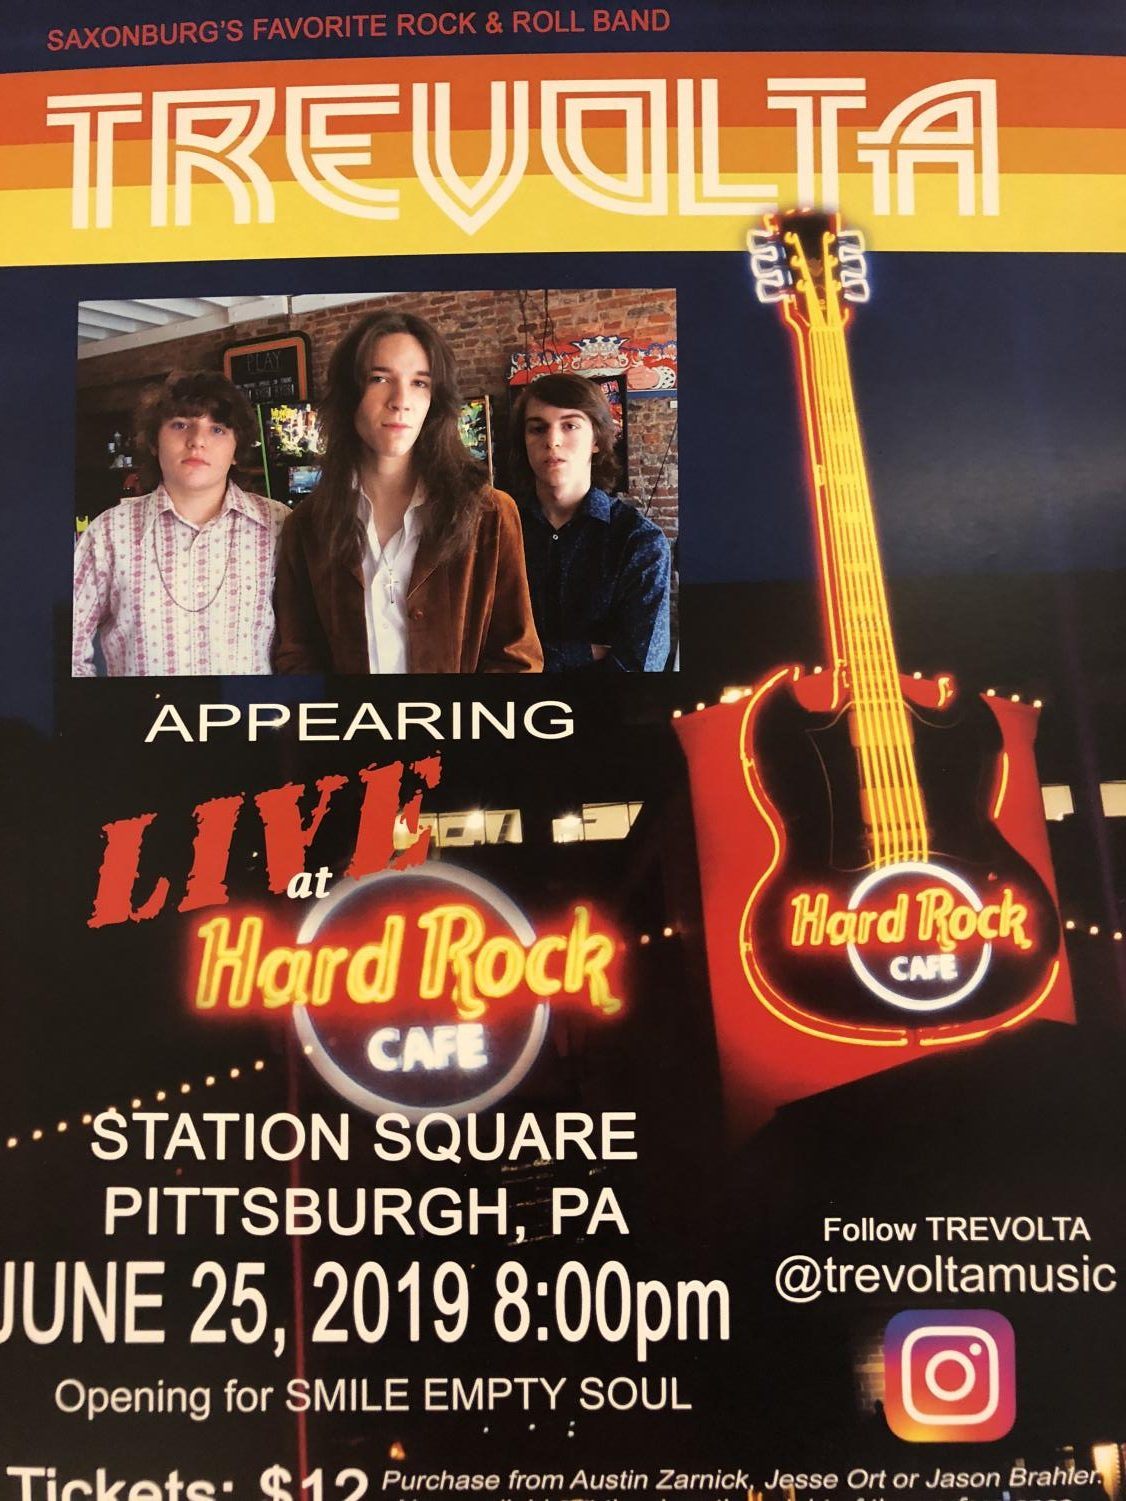 Jesse (center) and the band will be playing at Hard Rock Cafe June 25th, at 8:00 pm.